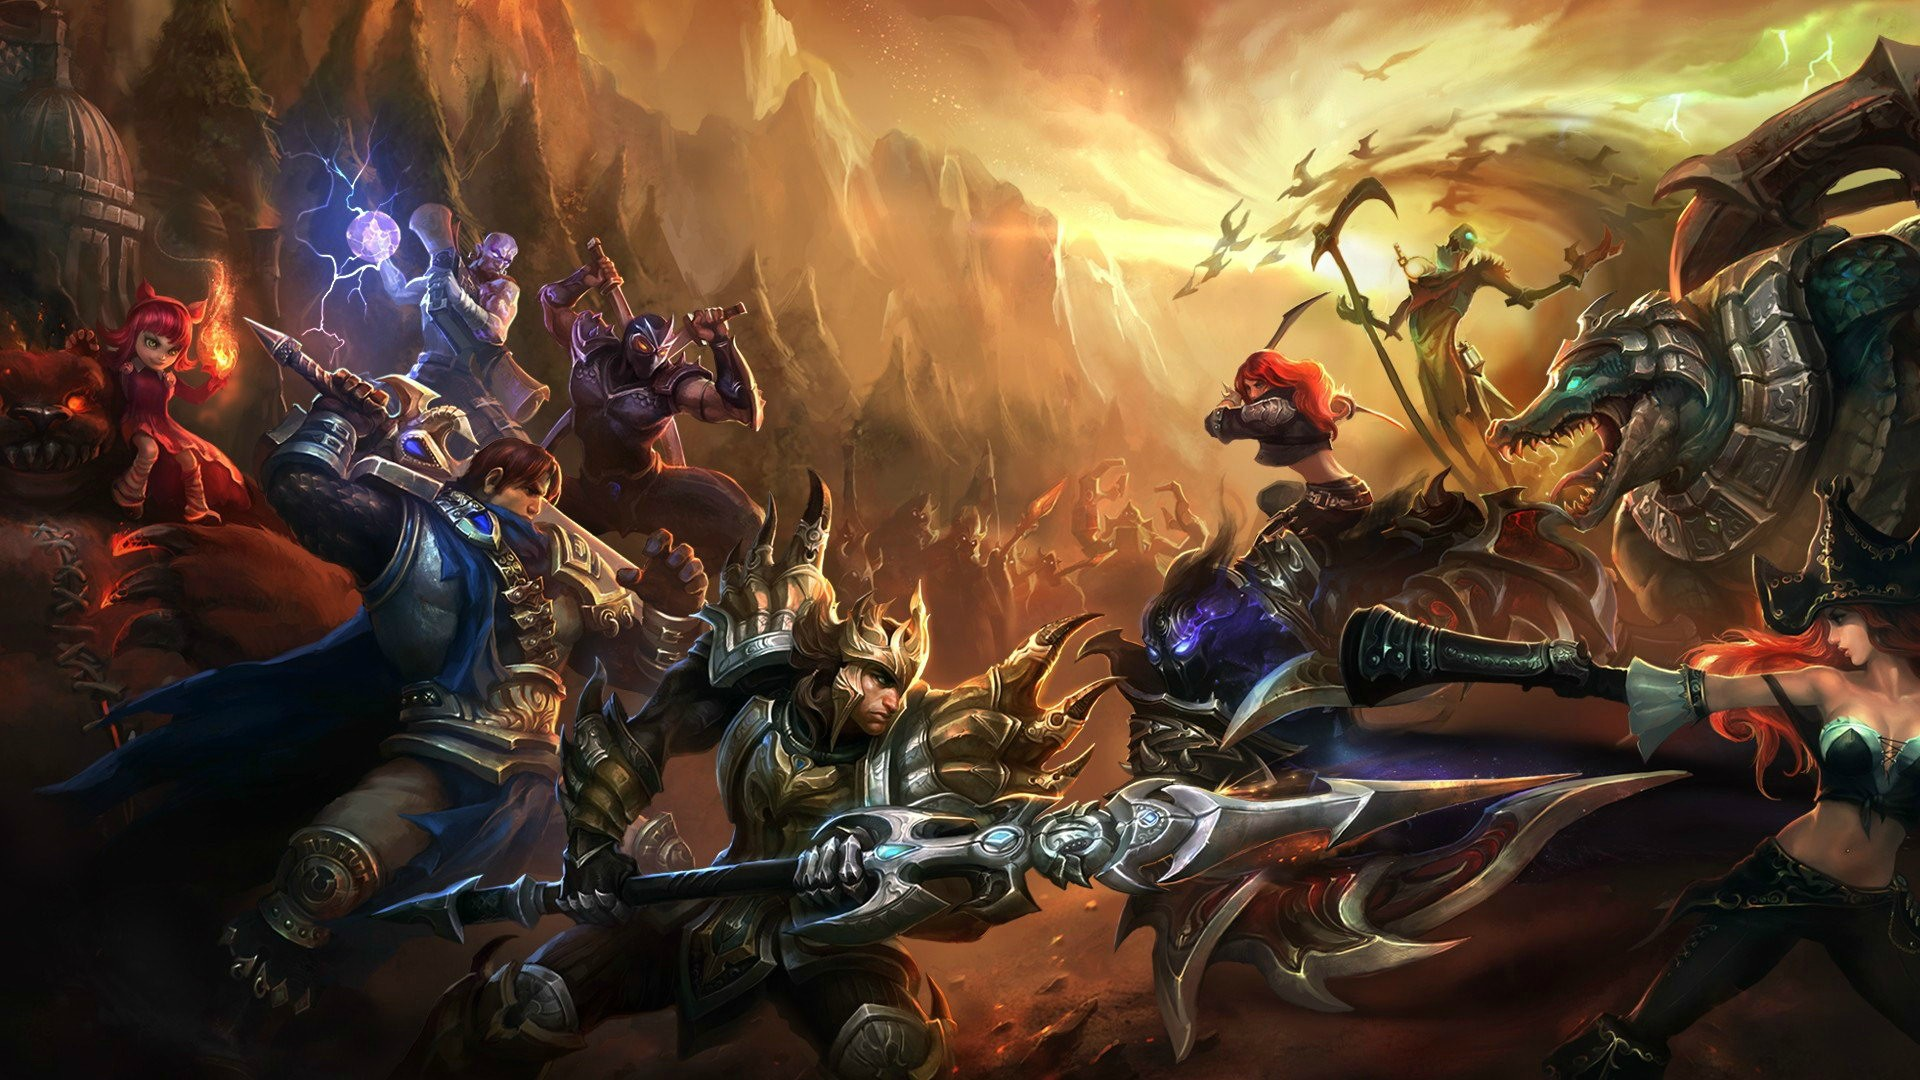 40 Best League of Legends Champion Wallpapers - DigitalArt io